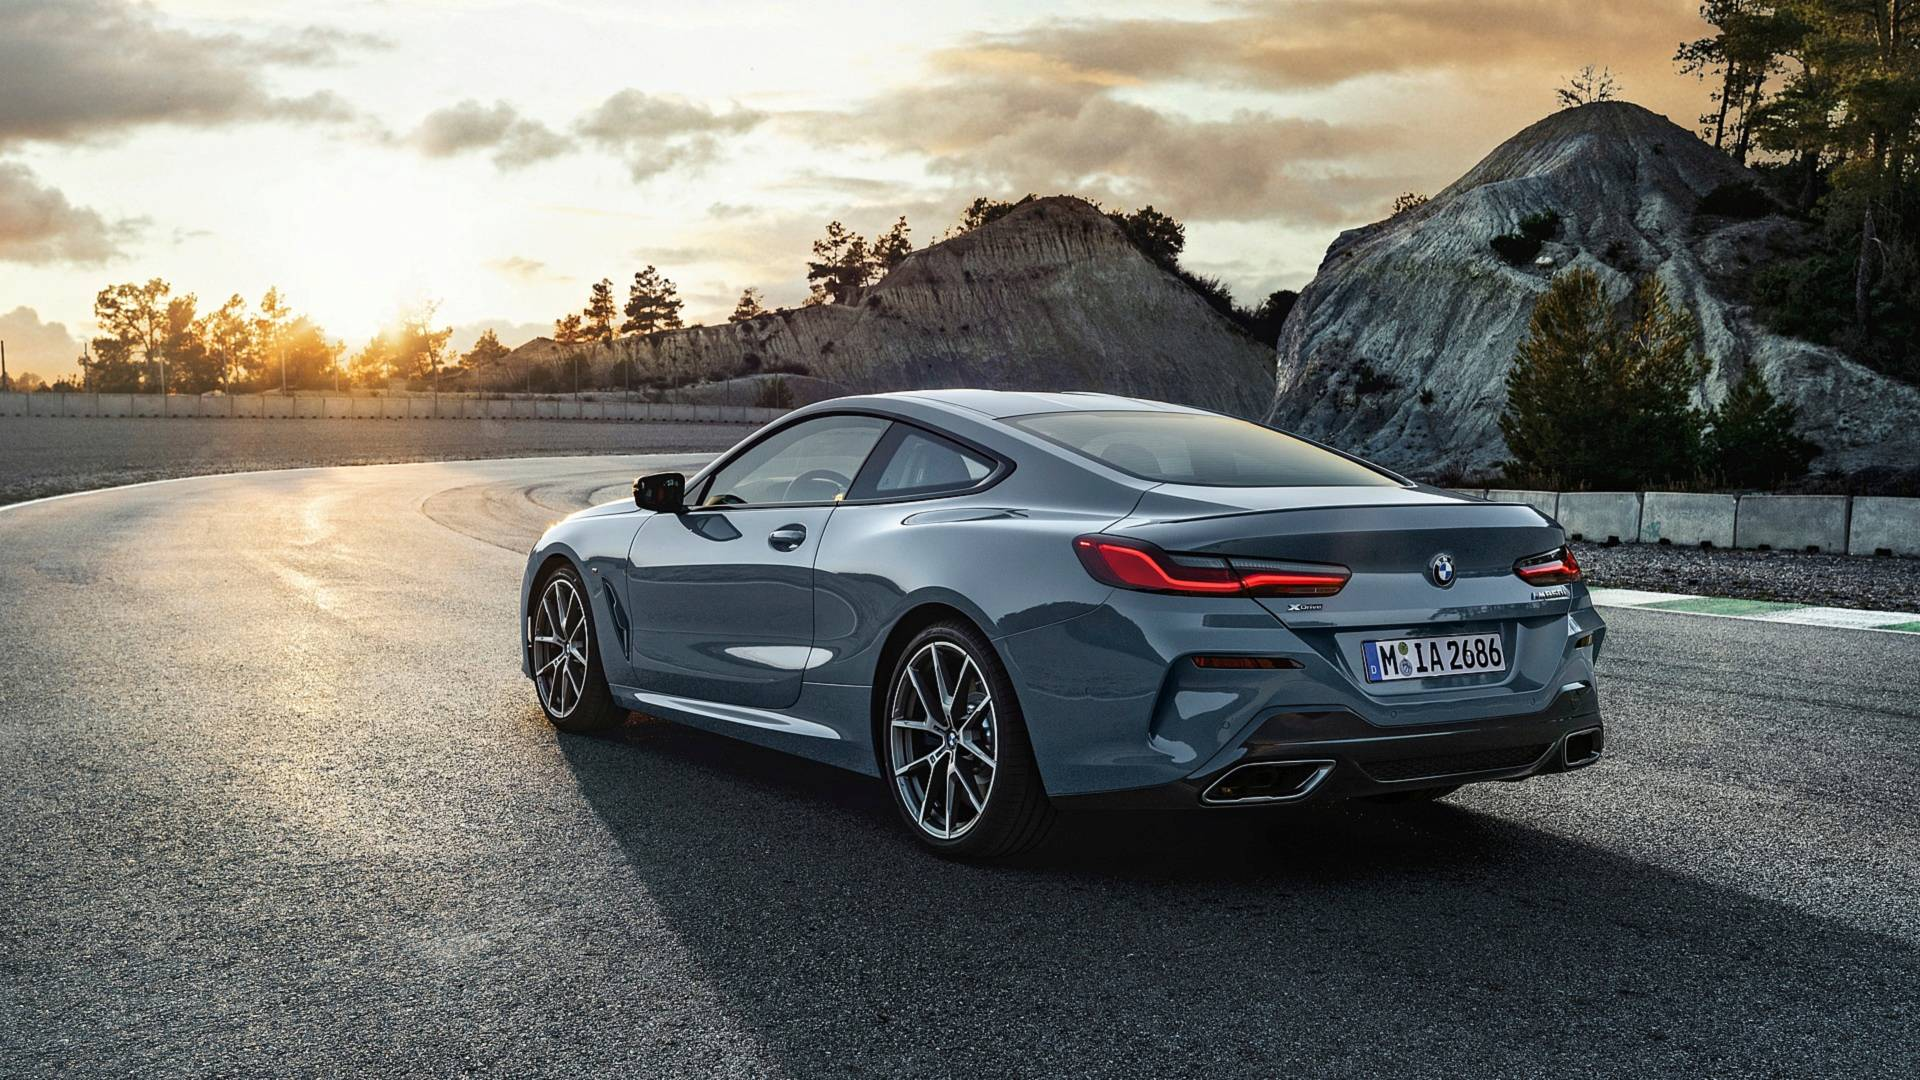 Bmw Serie 6 Gran Coupe 2018 >> New BMW 8 Series Gran Coupe, 8 Series Convertible Revealed By Design Patents - autoevolution